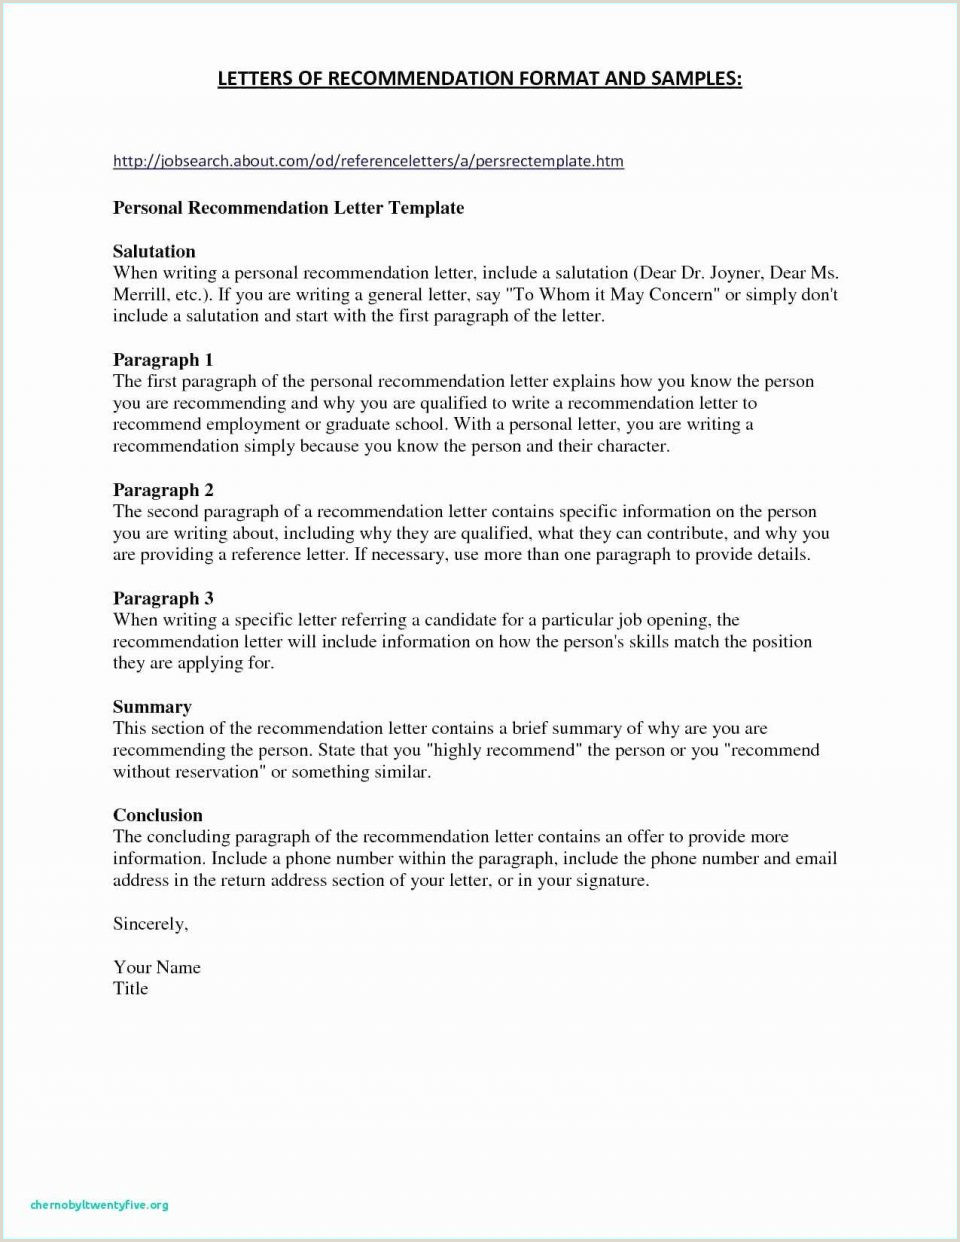 Resume format for Job Experience Pdf Hvac Resume Samples and Plete Writing Guide 20 Examples